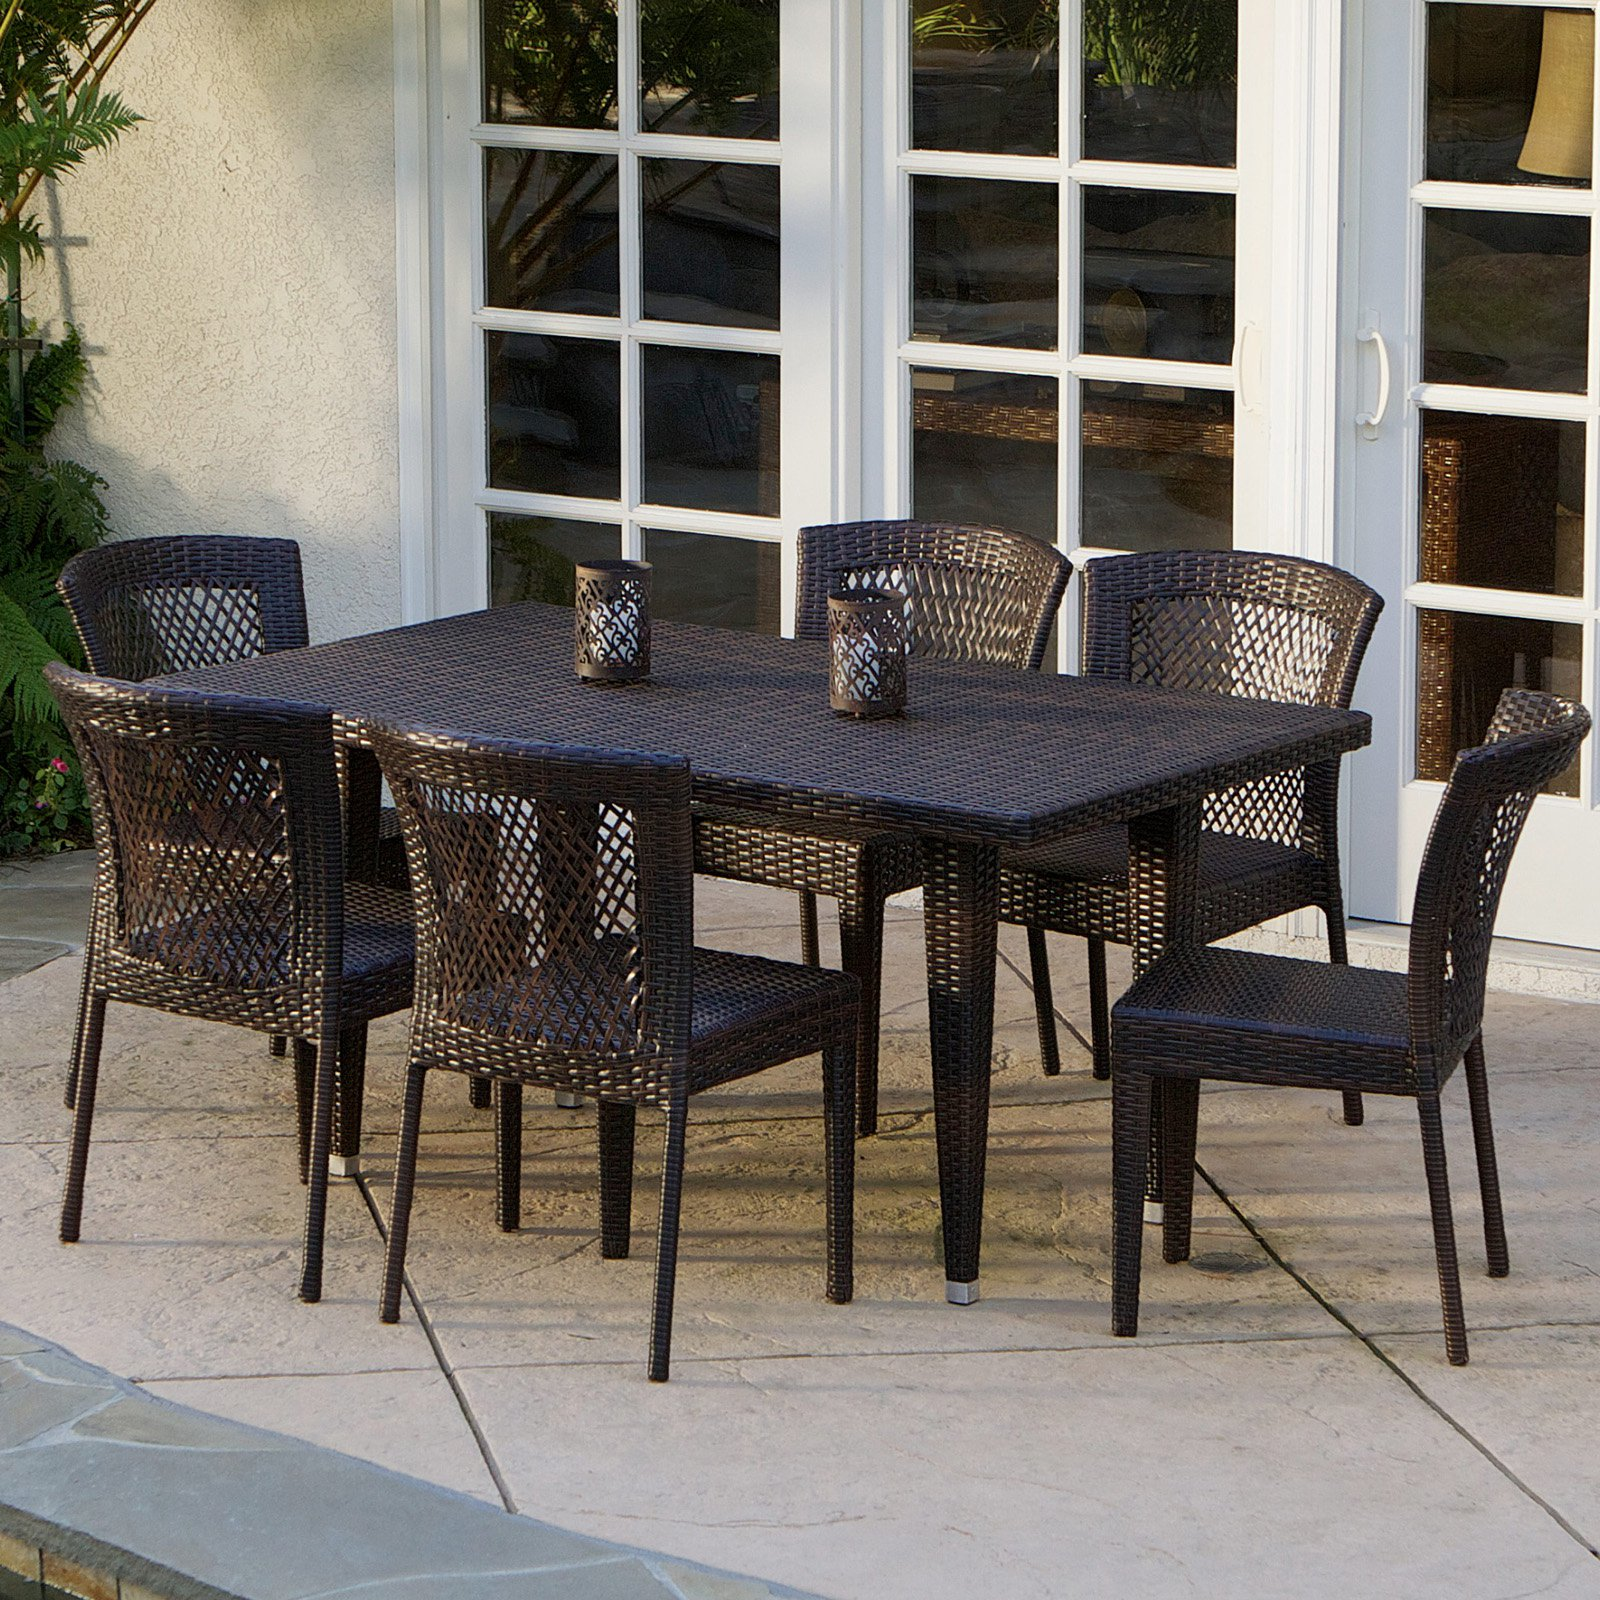 Click here to buy Dusk All-Weather Wicker Patio Dining Room Set Seats 6 by Overstock.